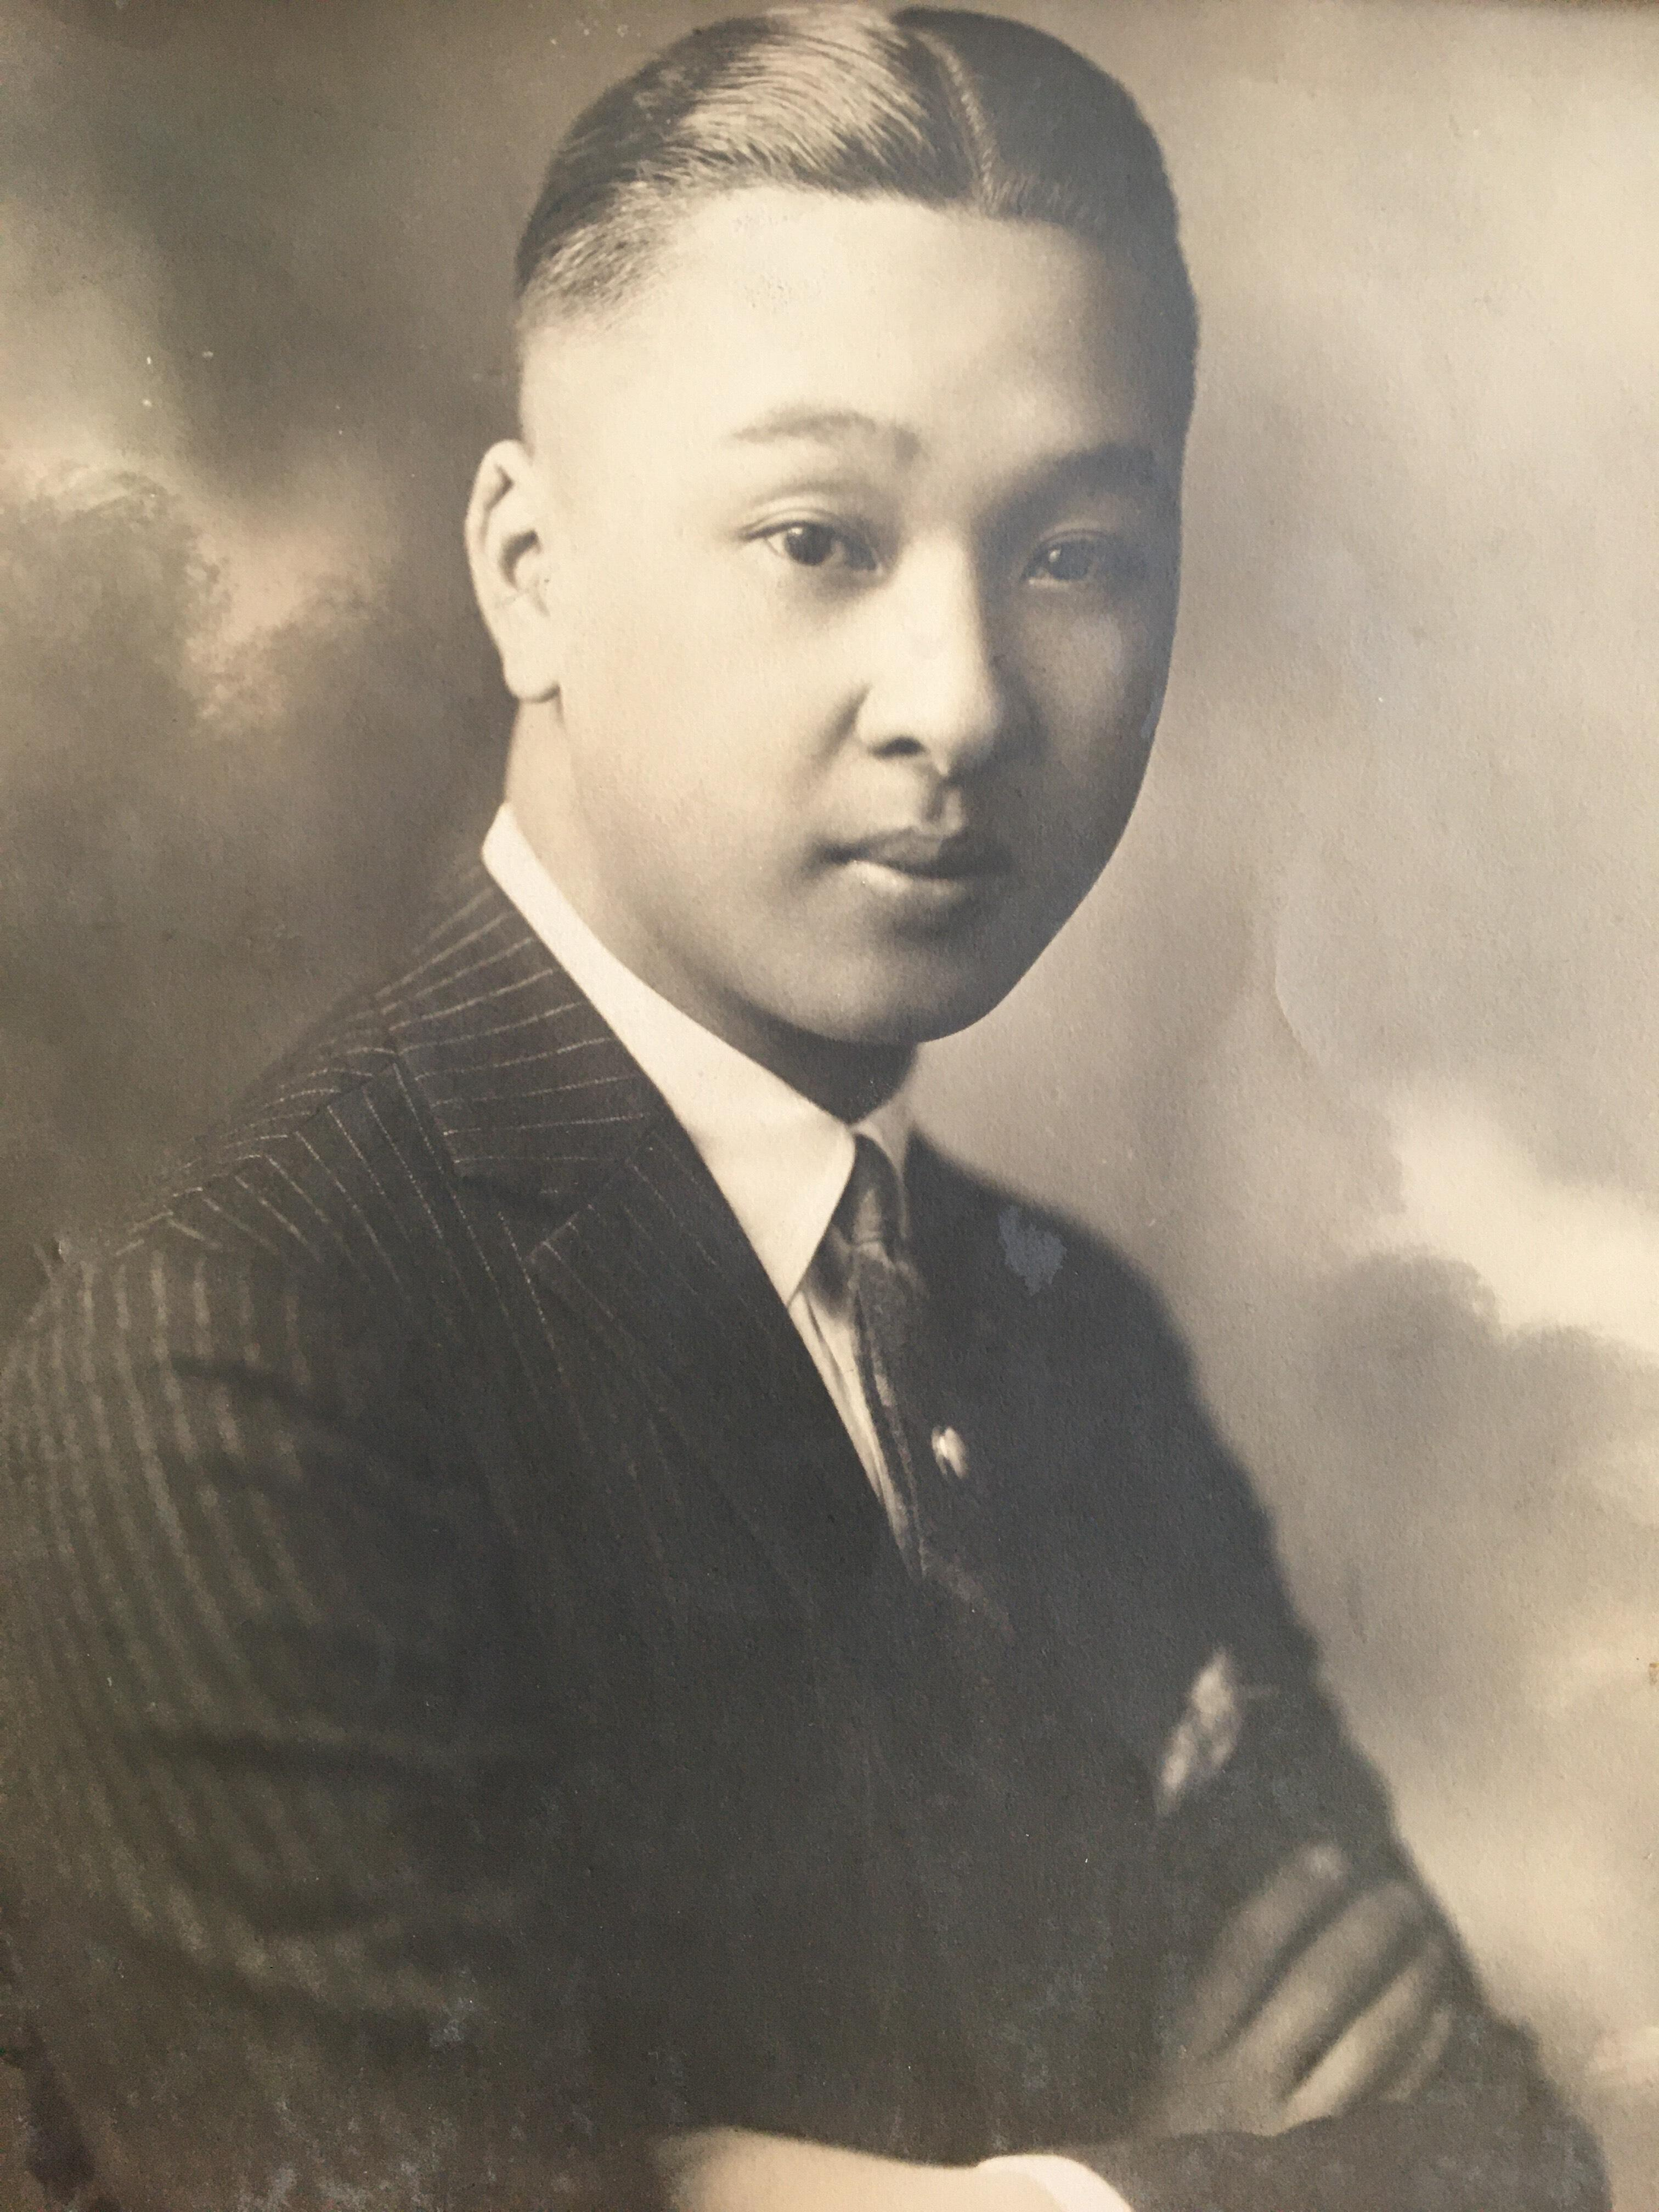 A sepia toned photograph from 1923 of Wallace Fong, a young Chinese-American man.